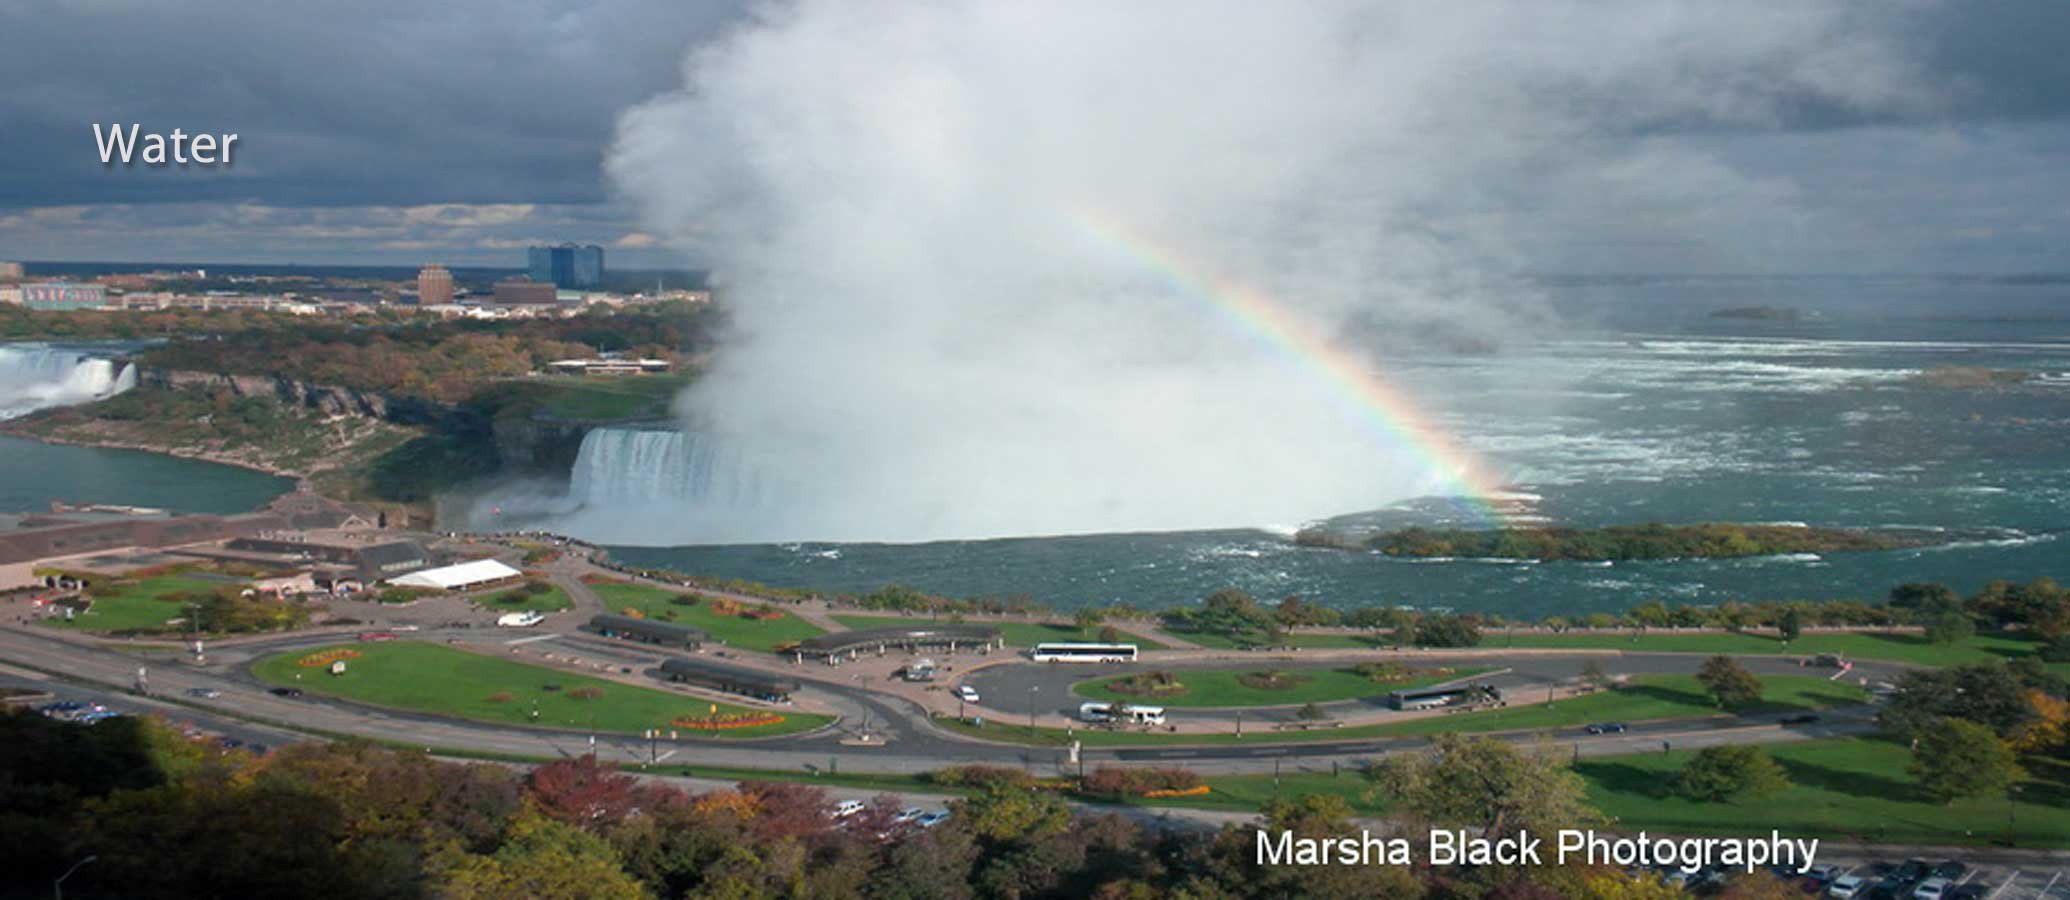 Water-Niagara-Falls-with-rainbow-Marsha-J-Black-900